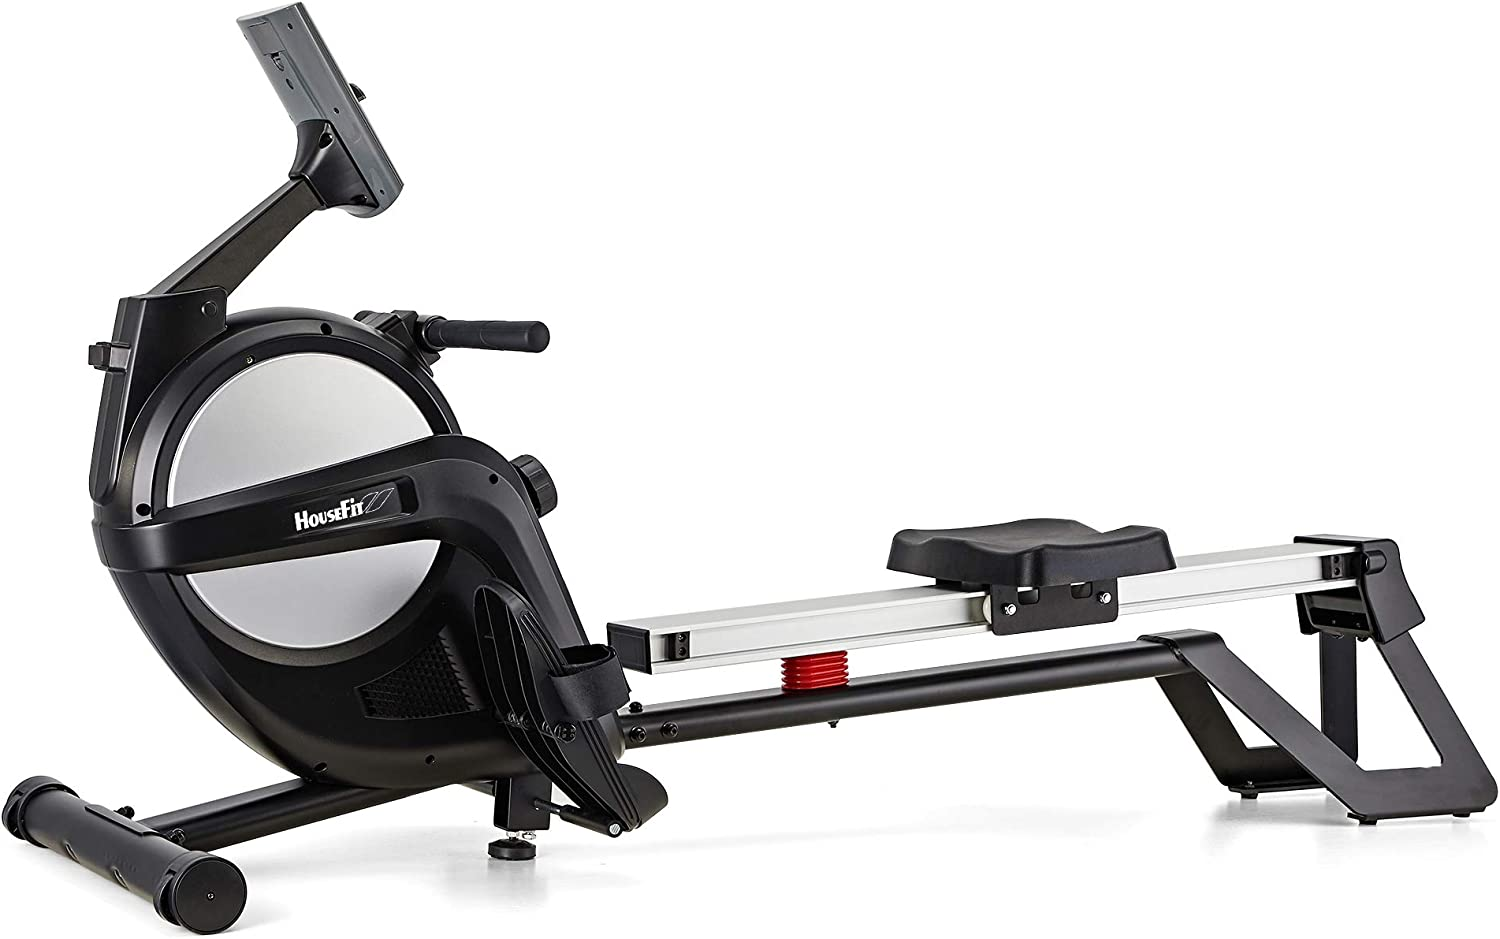 HouseFit Rowing Machine 300Lbs Weight Capacity for Home use 15-Level Magnetic Resistance Row Machine Exercise with LCD Display